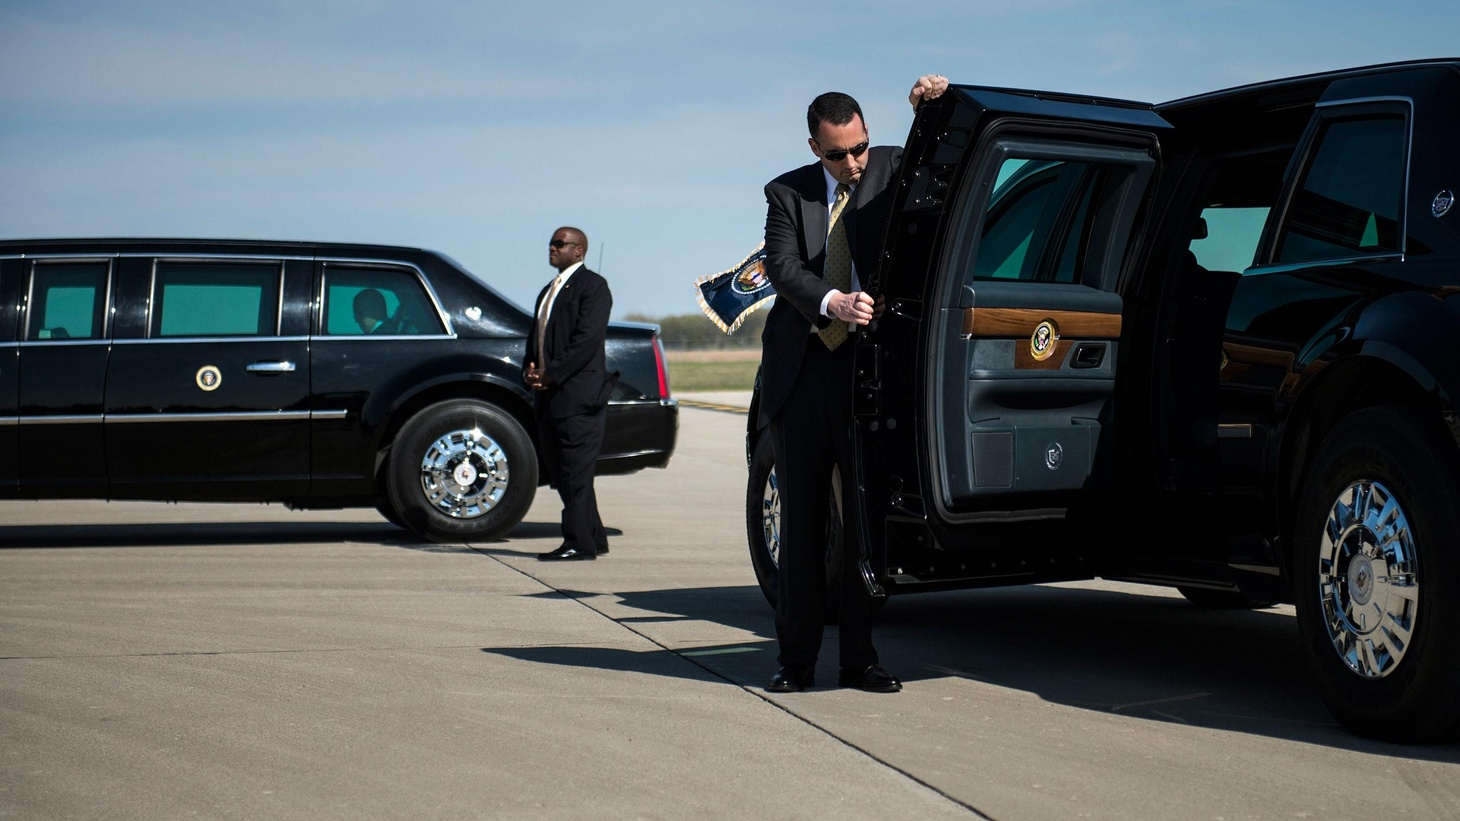 The squeaky clean Secret Service and General Services Administration are ensnared in scandals involving behavior befitting the bad guys they usually investigate.